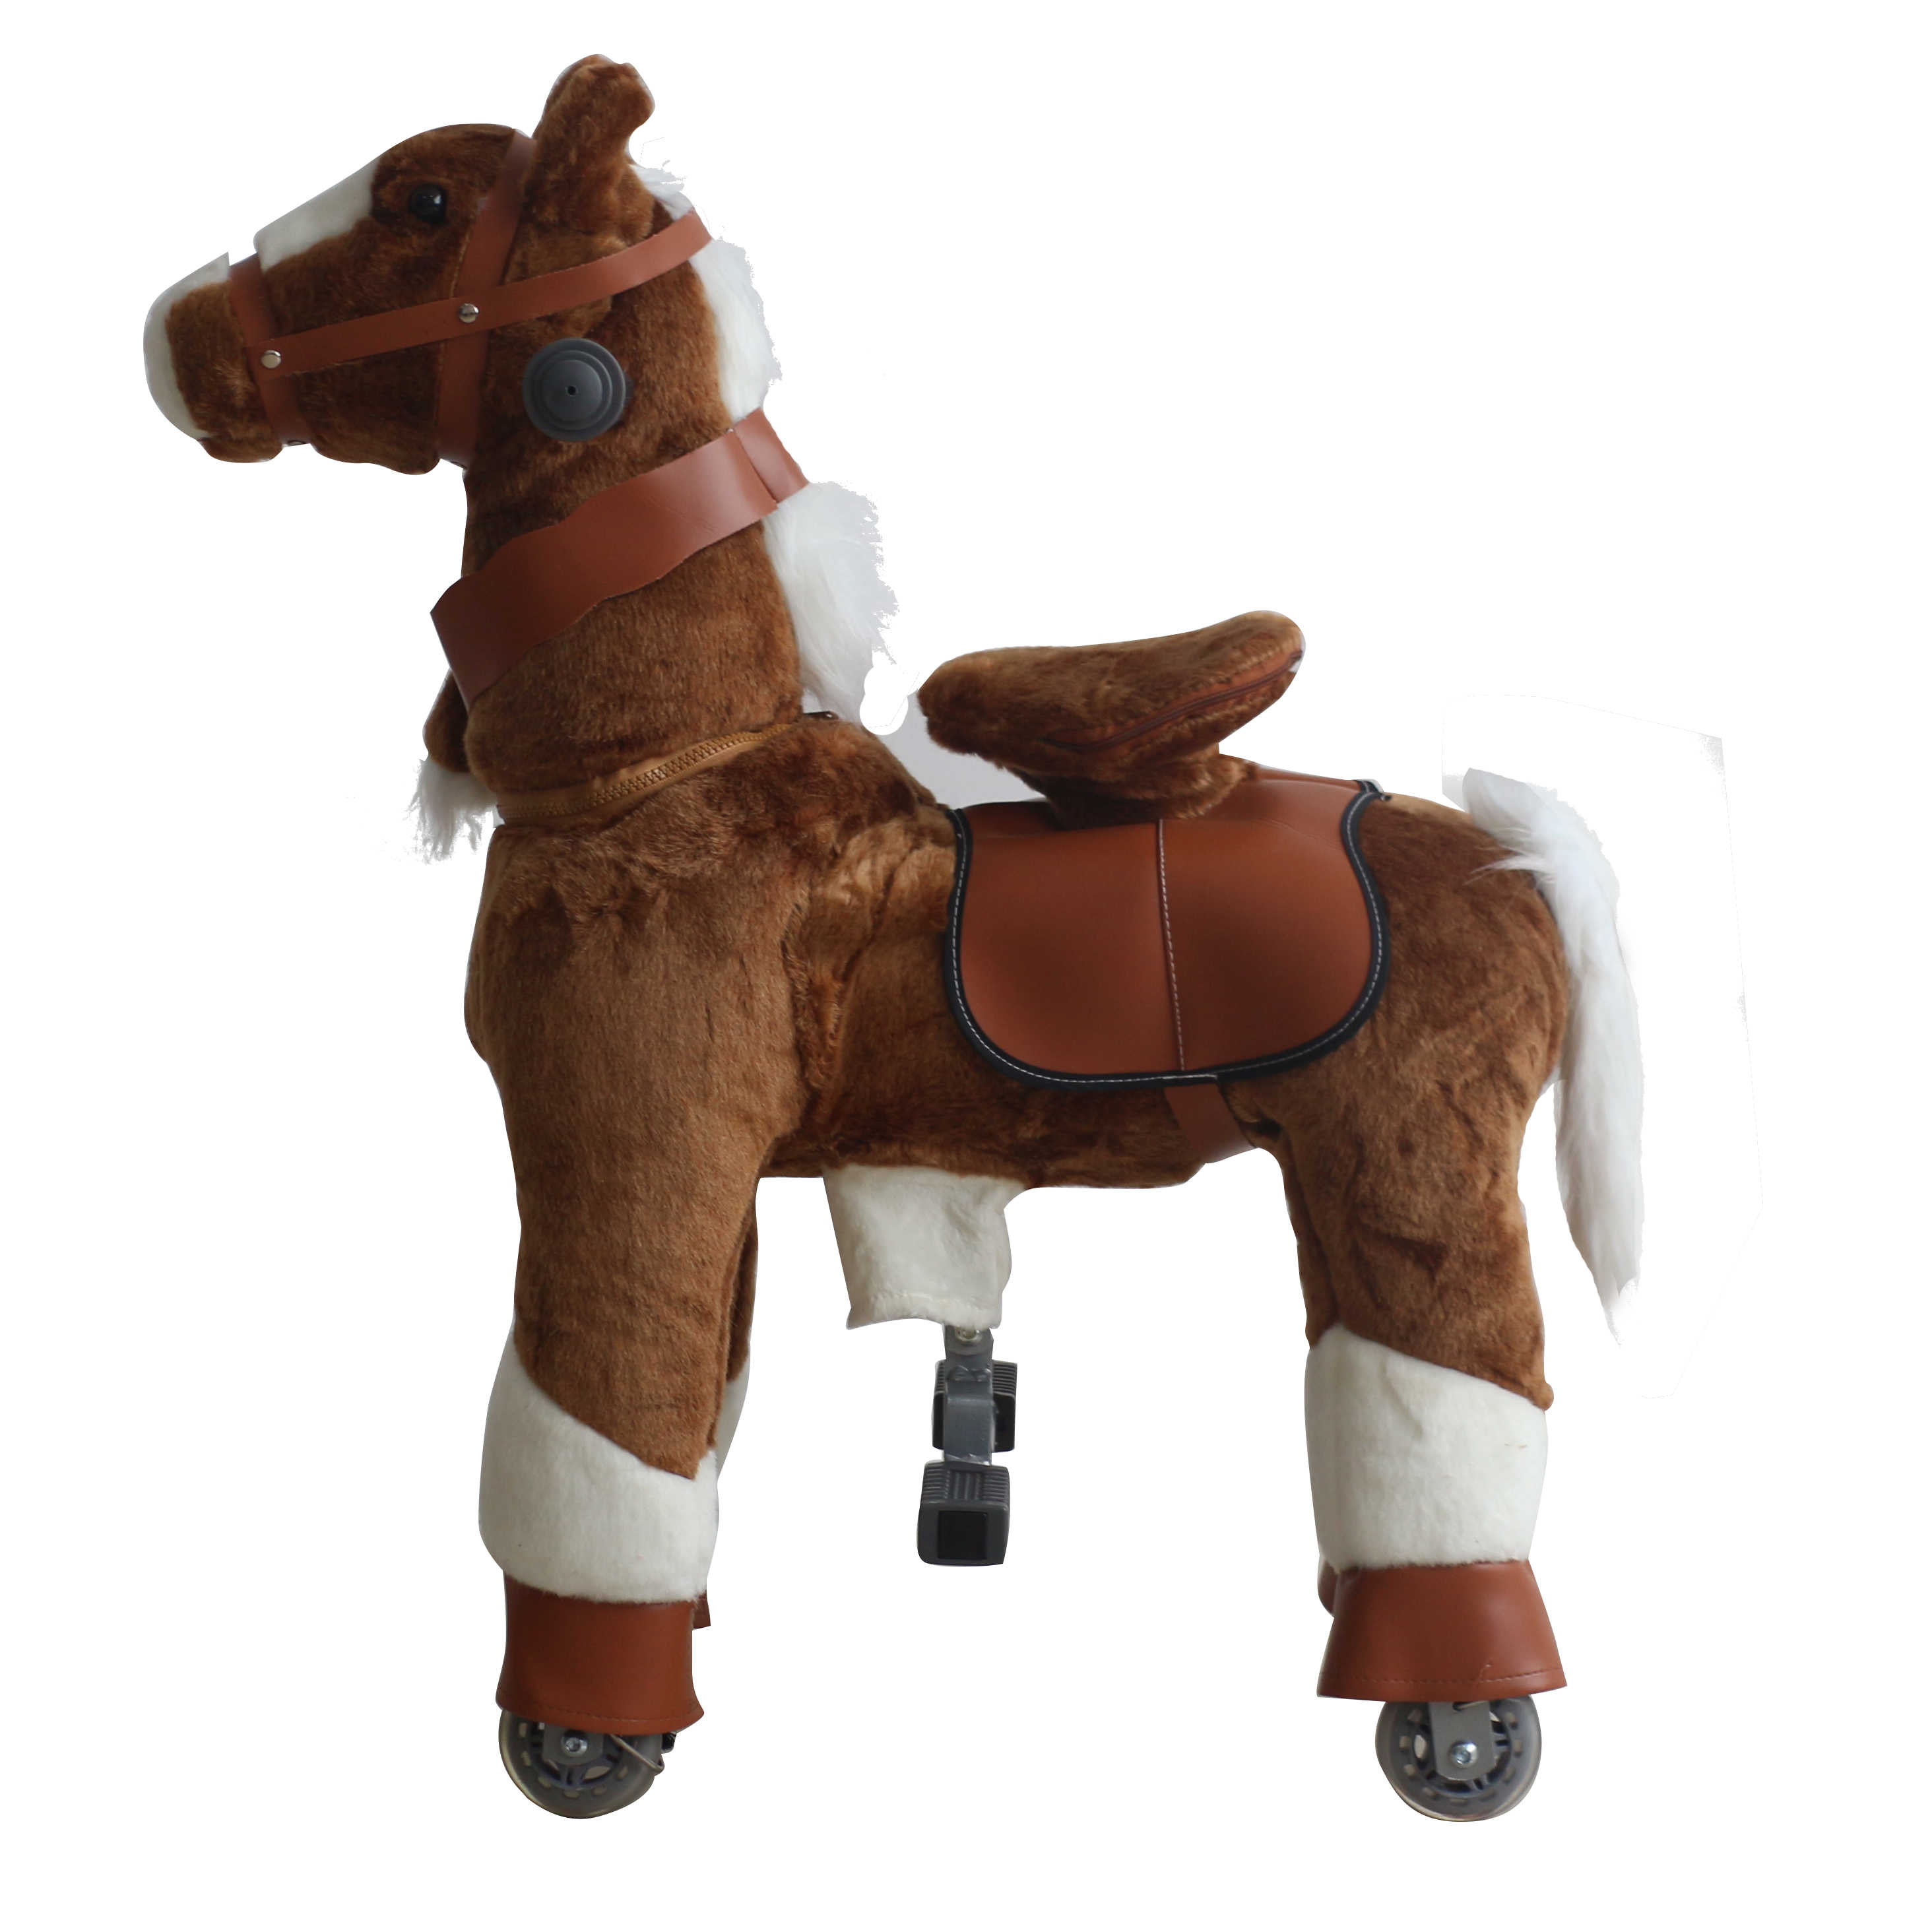 Ride On Horse Plush For Aged 3 8 Years Kids Mechanical Horse With White Hoof Walking Animal Riding For Race Game Ride On Toys Aliexpress